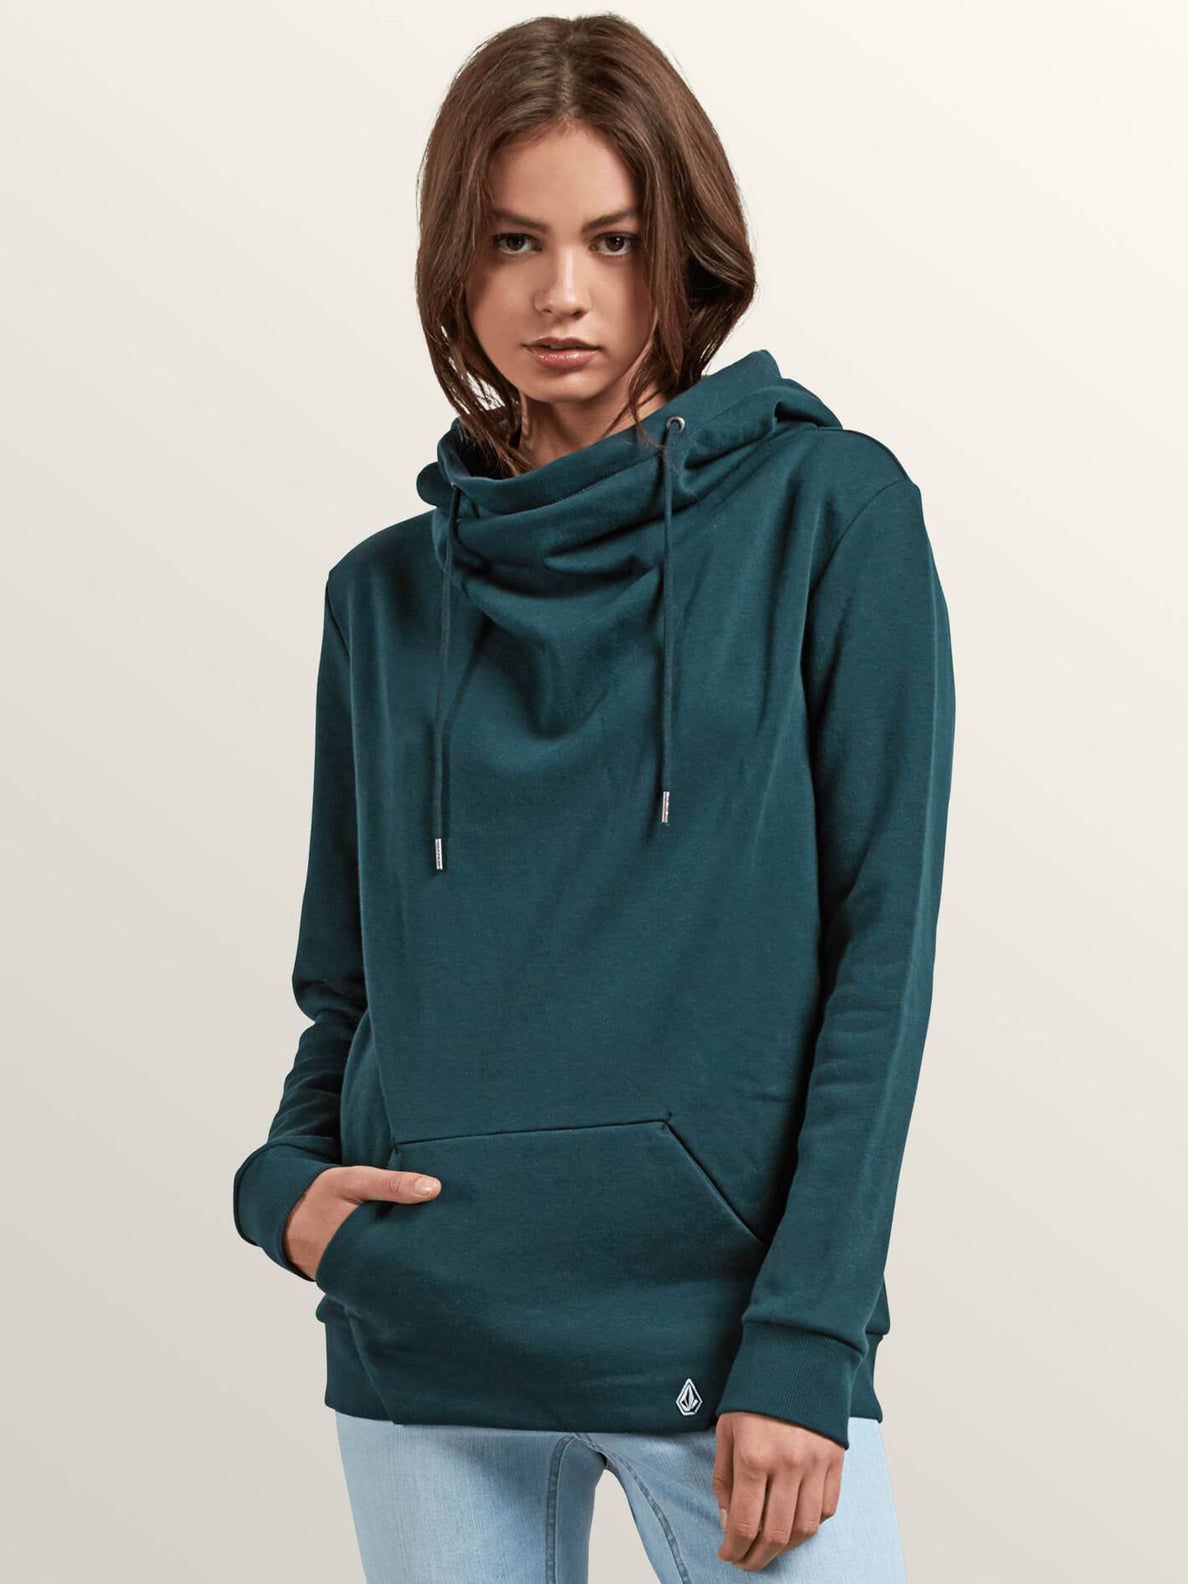 Walk On By High Neck Hoodie - Evergreen